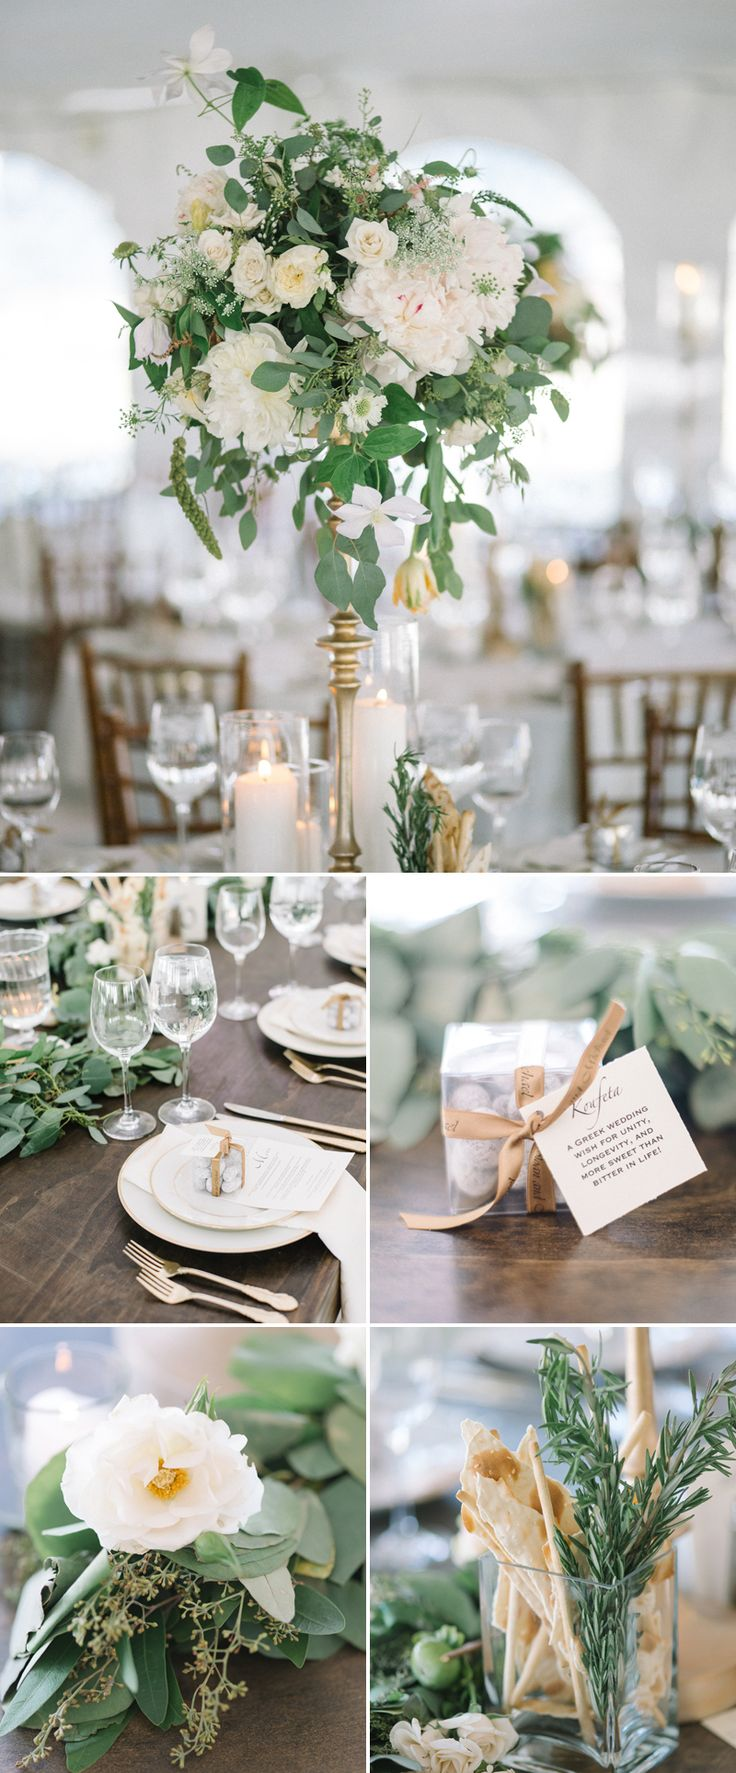 Location Scout – Rocky Mountain High | Hearts Aflutter by Flutter Magazine Soft neutrals, summer, tall centerpiece. White and ivory. Peonies, clematis. Flower stands. Colorado wedding.